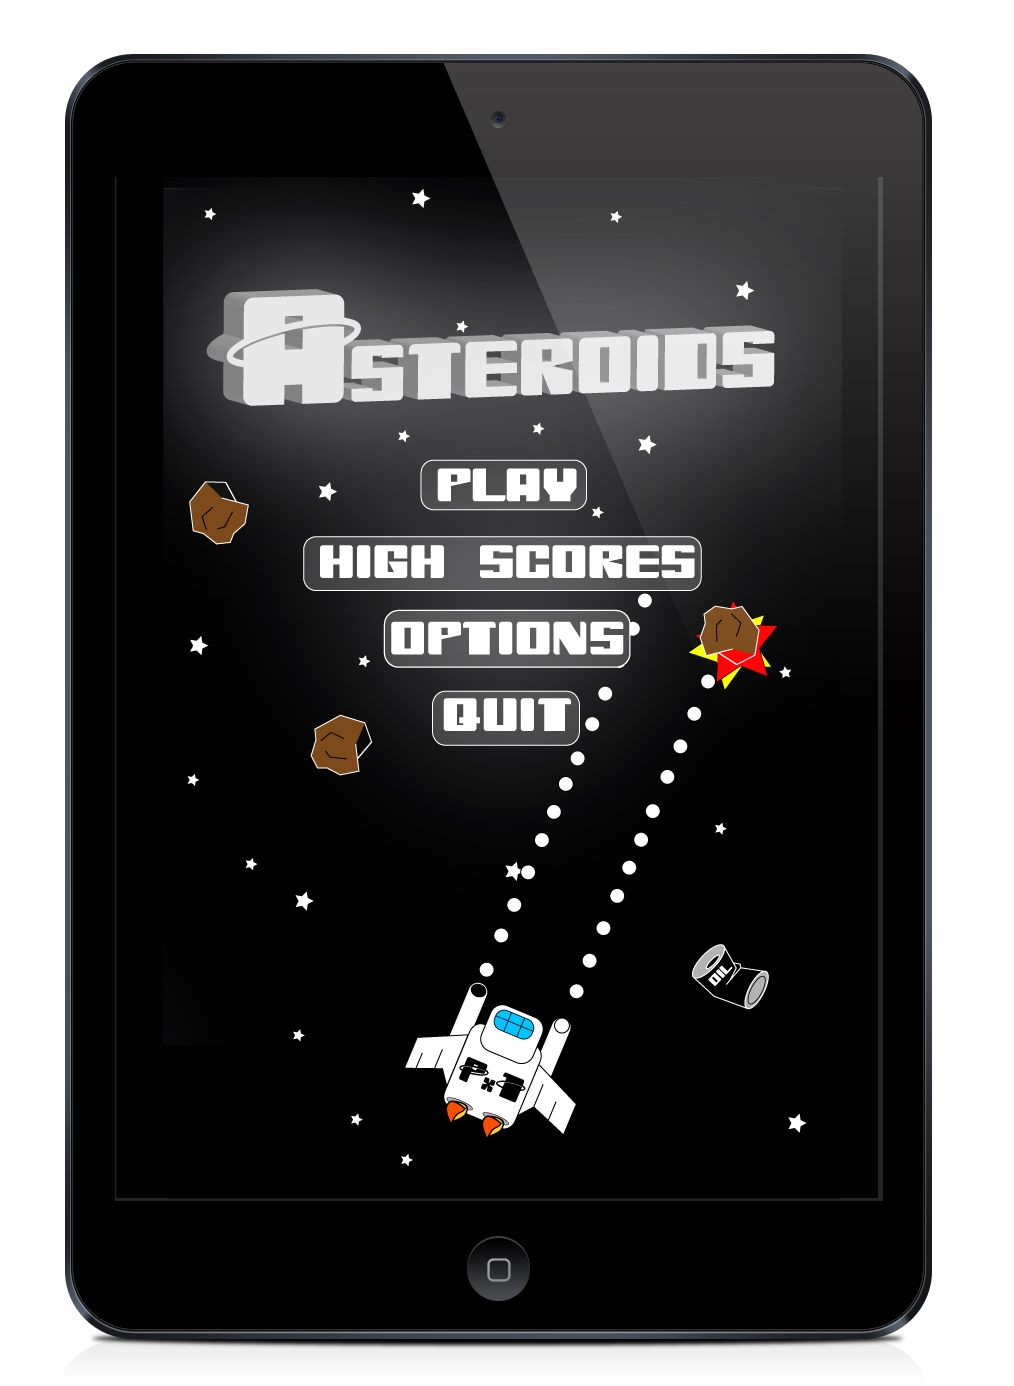 iPad Mini Mock-up_ASTEROIDS.jpg